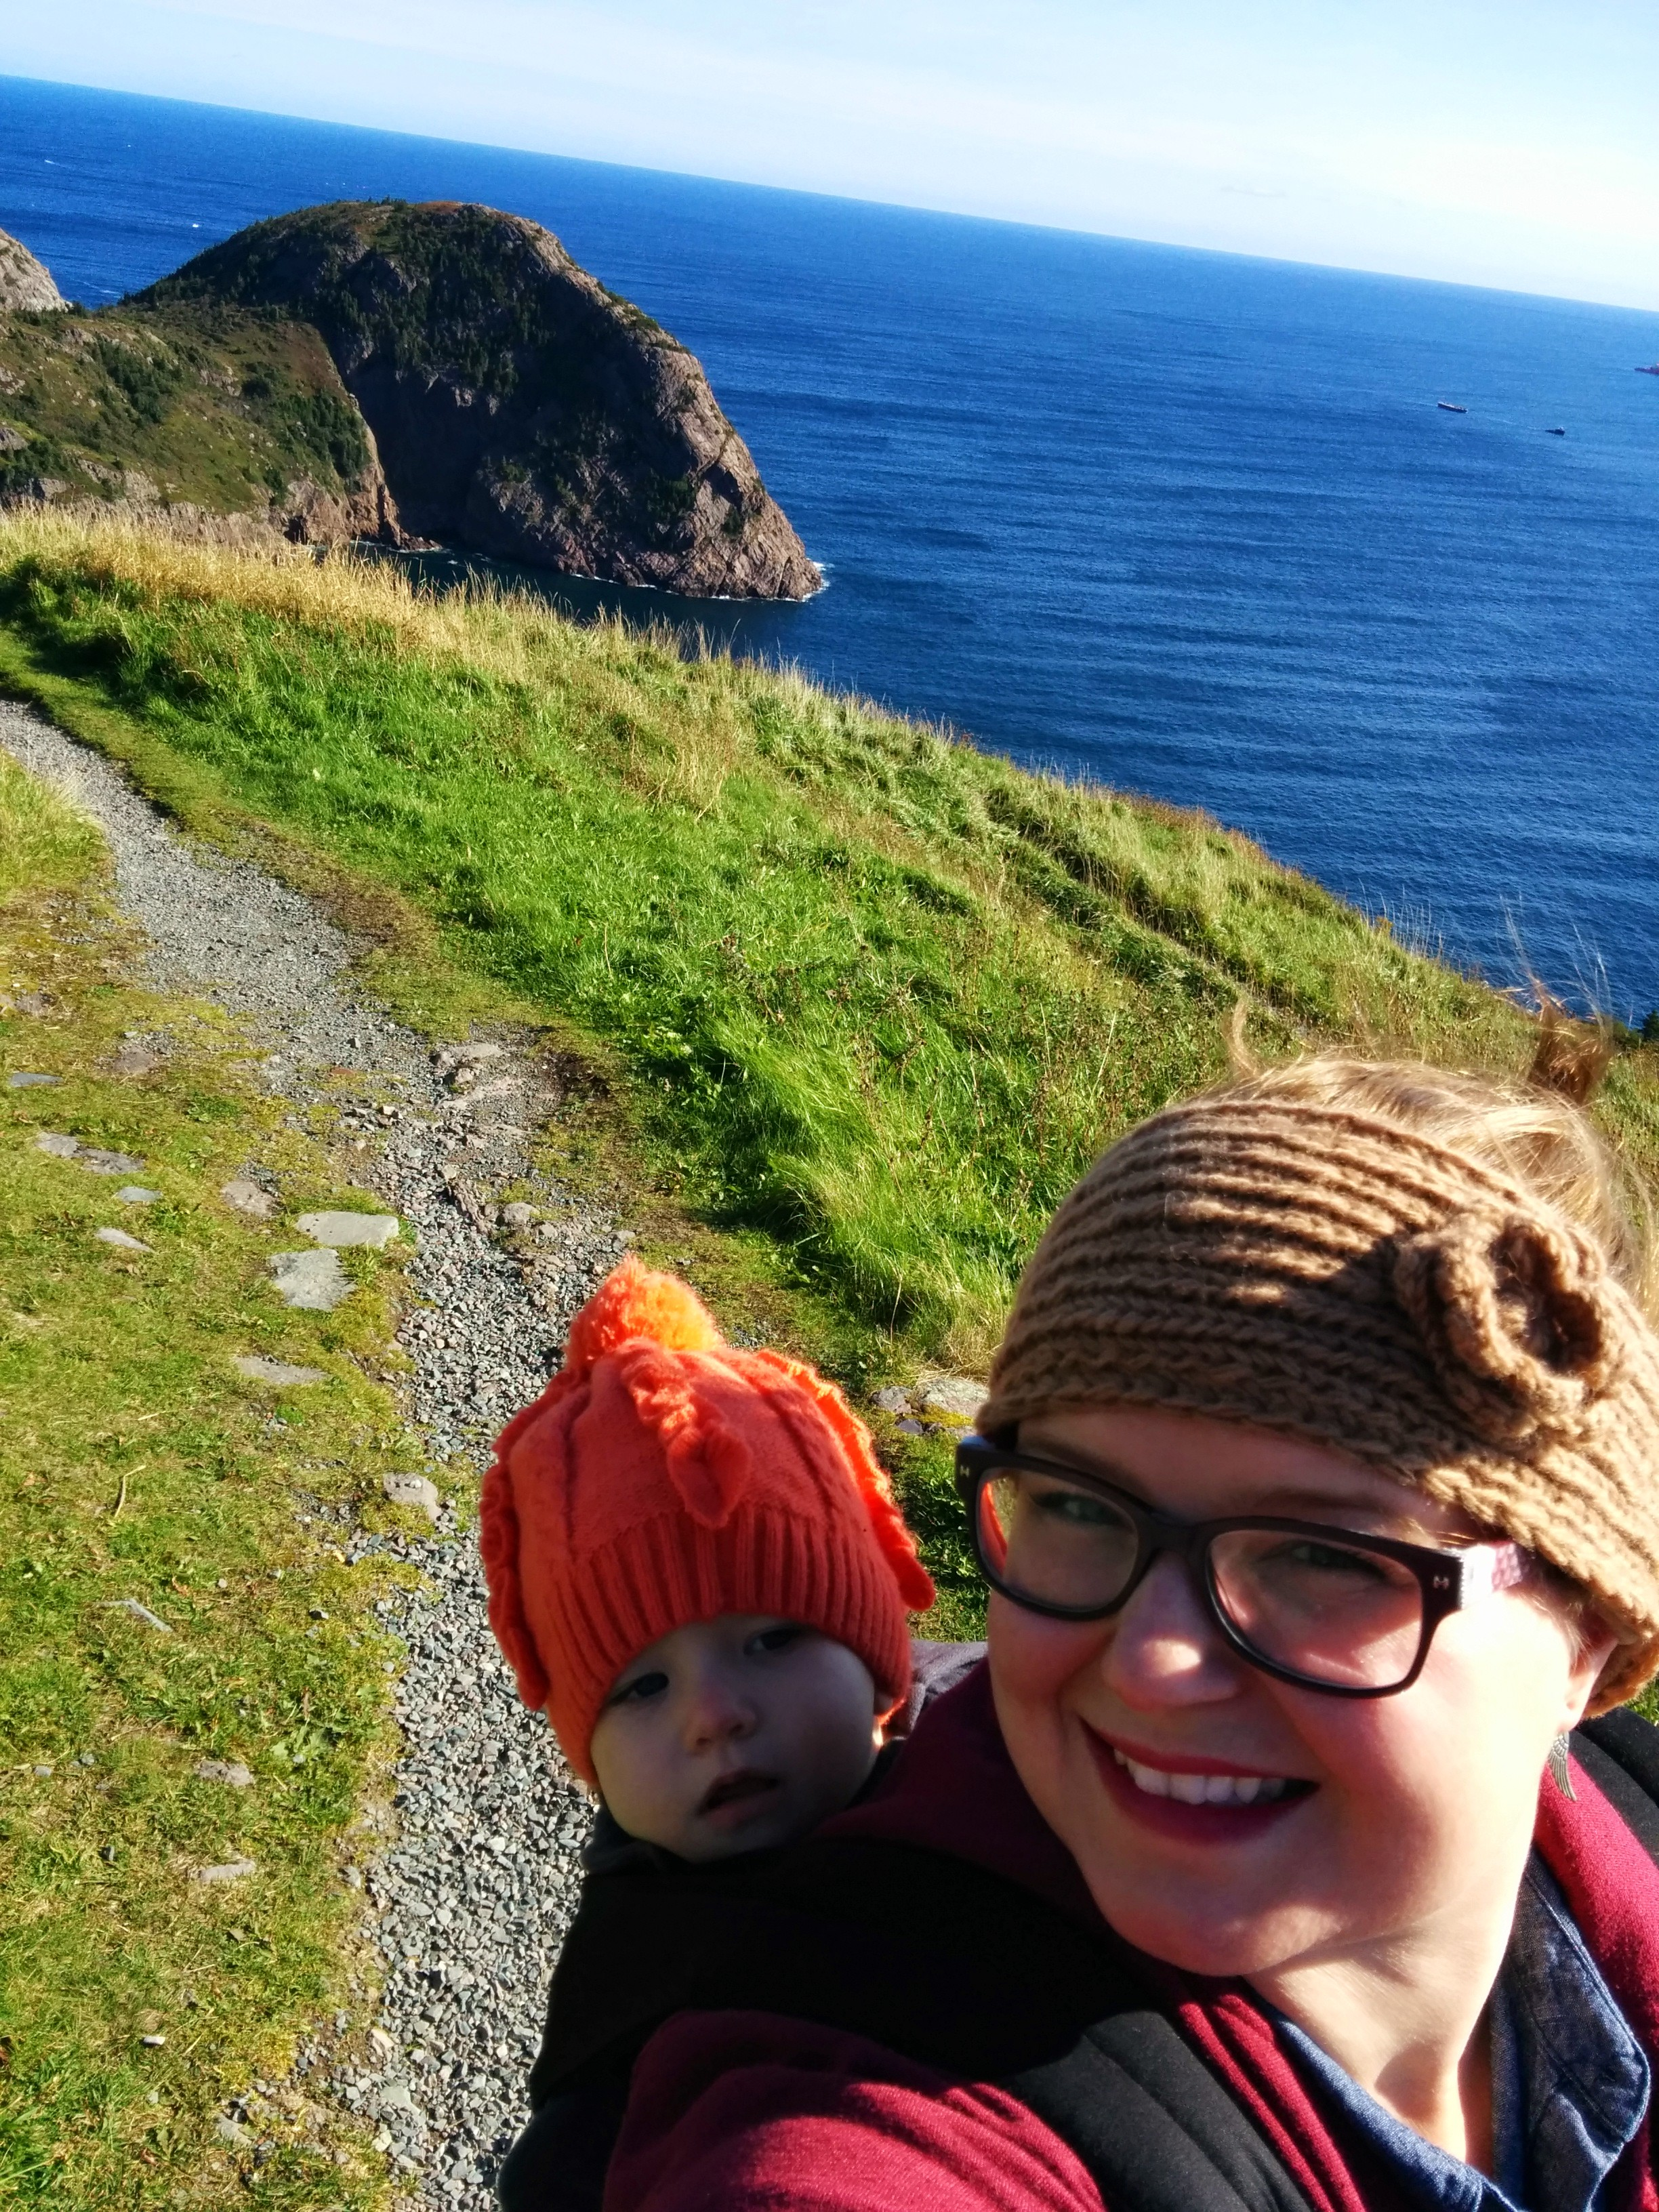 On Signal Hill in St. John's, Newfoundland. [Image description: a white woman with large purple glasses takes a selfie. She is wearing a brown headband and a child on her back, who is wearing a bright orange tuque. They are standing on a rocky and grassy trail in front of a big blue ocean behind them.]